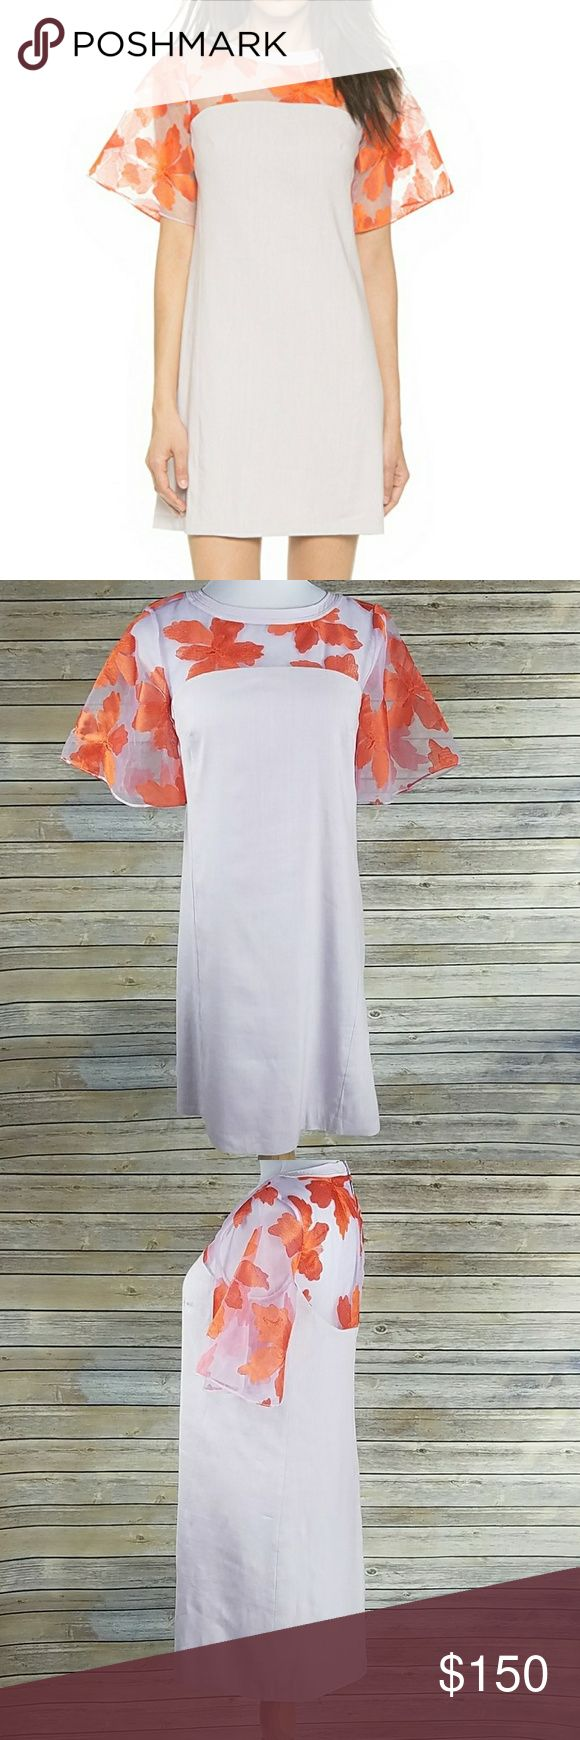 *Rebecca Taylor Dress* Beautiful floral organza dress fully lined with hidden zippered back in great condition! Make an offer. Rebecca Taylor Dresses Mini